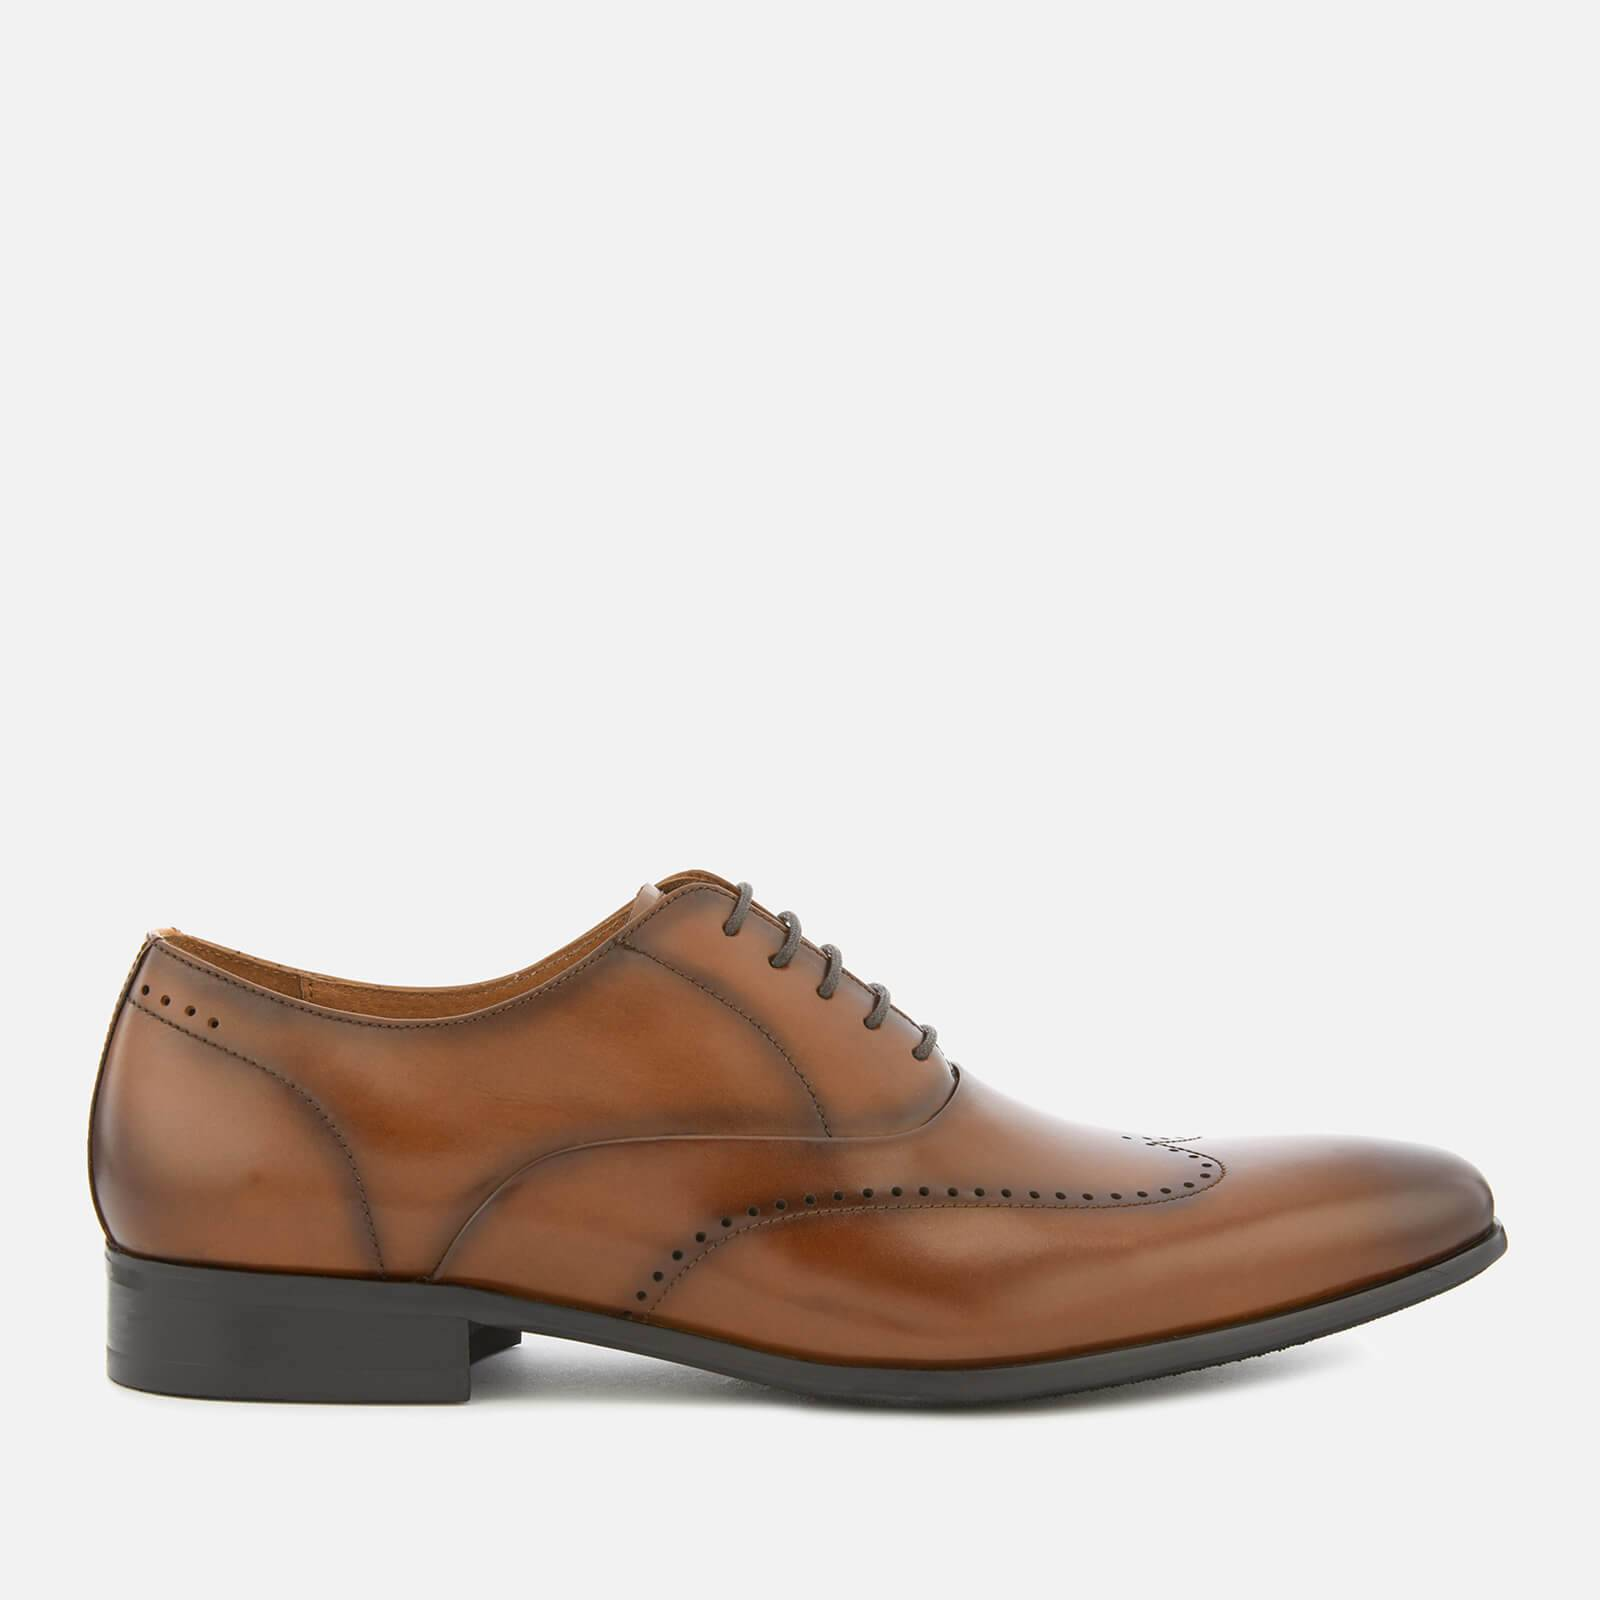 Dune Men's Perivale Leather Oxford Shoes - Brown - UK 12 - Brown